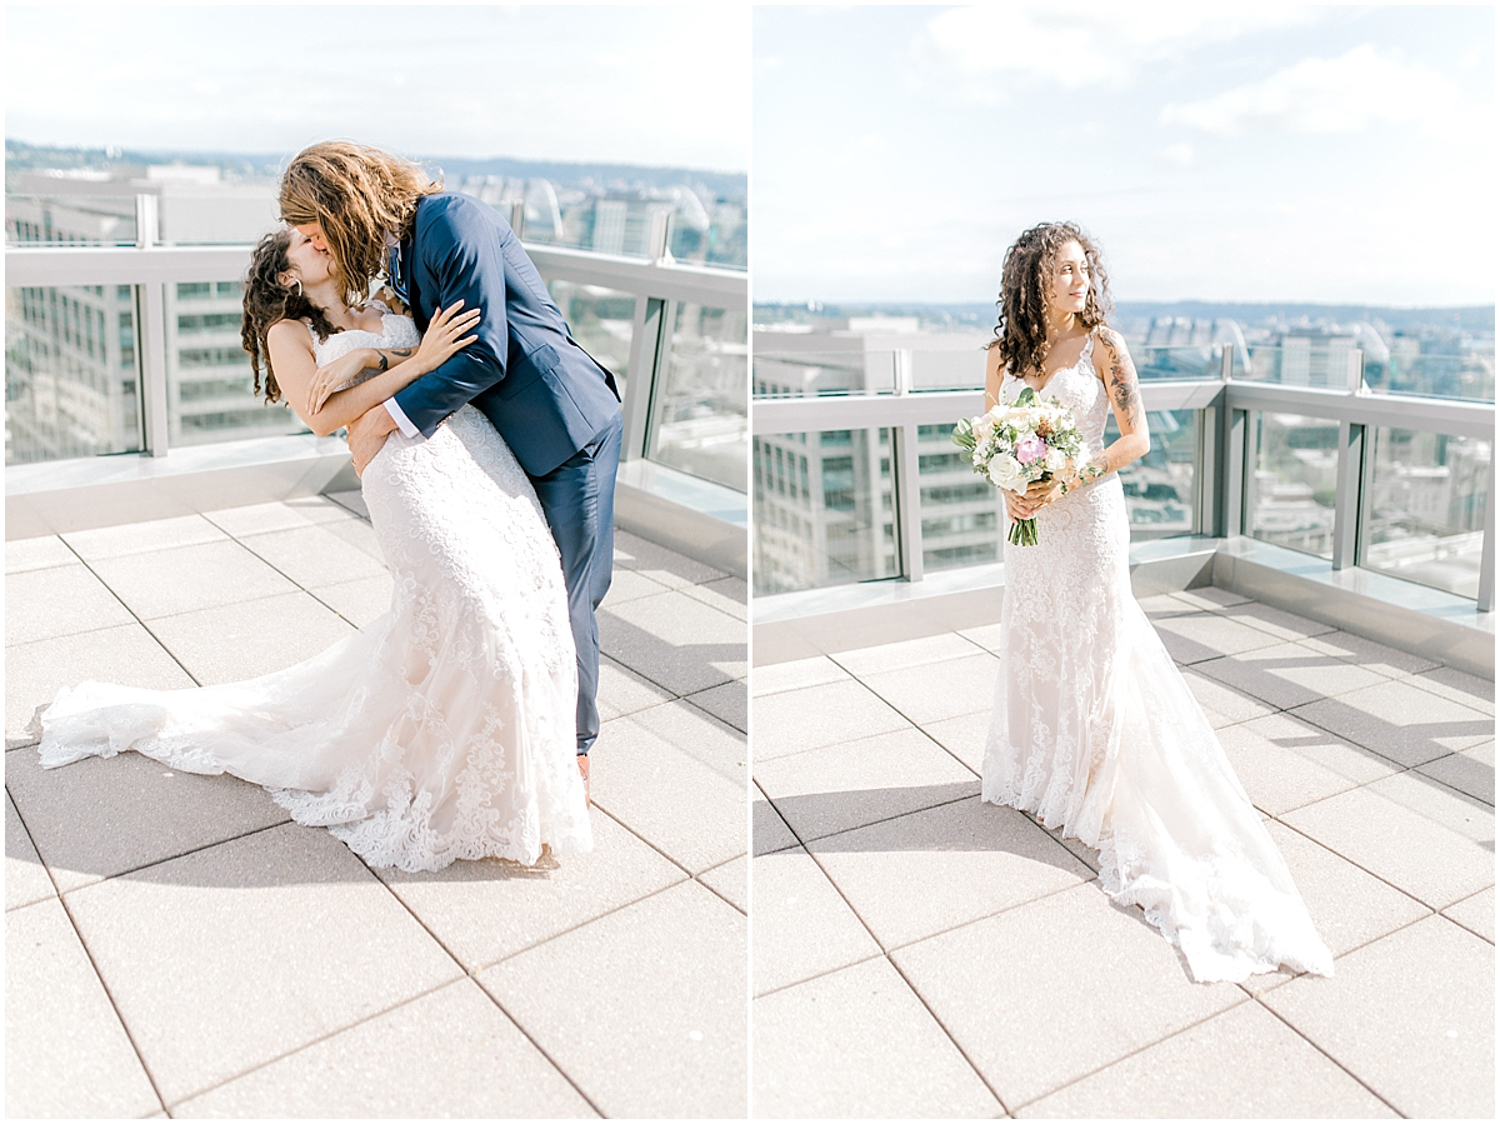 Seattle City Hall Courthouse Wedding Elopement | Seattle Wedding Photographer | Emma Rose Company | Downtown Seattle Wedding Inspiration | Pacific Northwest Elopement | Courthouse Elopement in the City-55.jpg